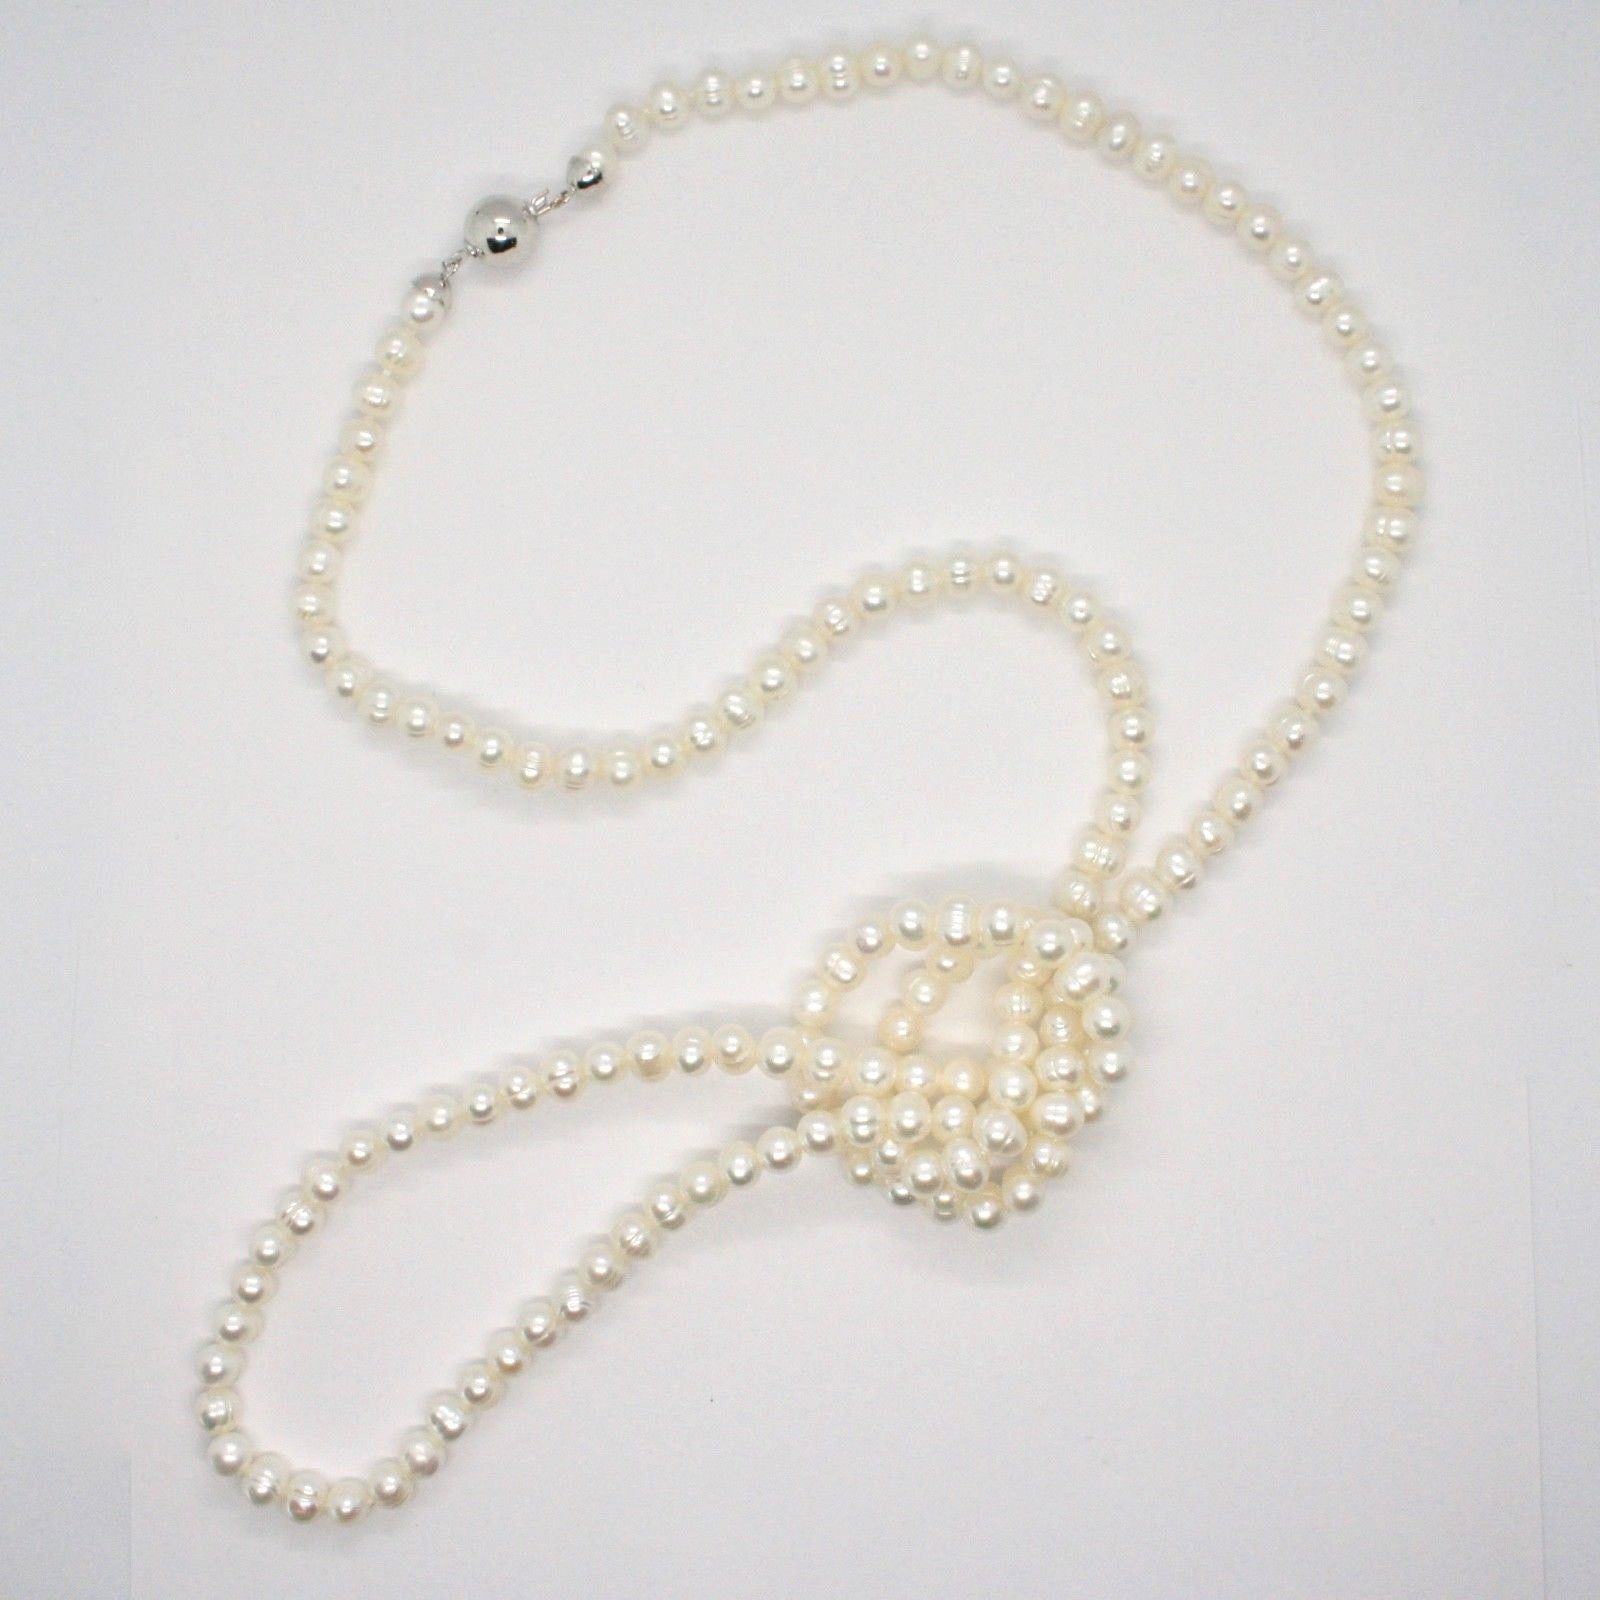 COLLAR LARGO 110 CM DE ORO BLANCO 18 CT PERLAS BLANCAS AGUA DULCE MADE IN ITALY